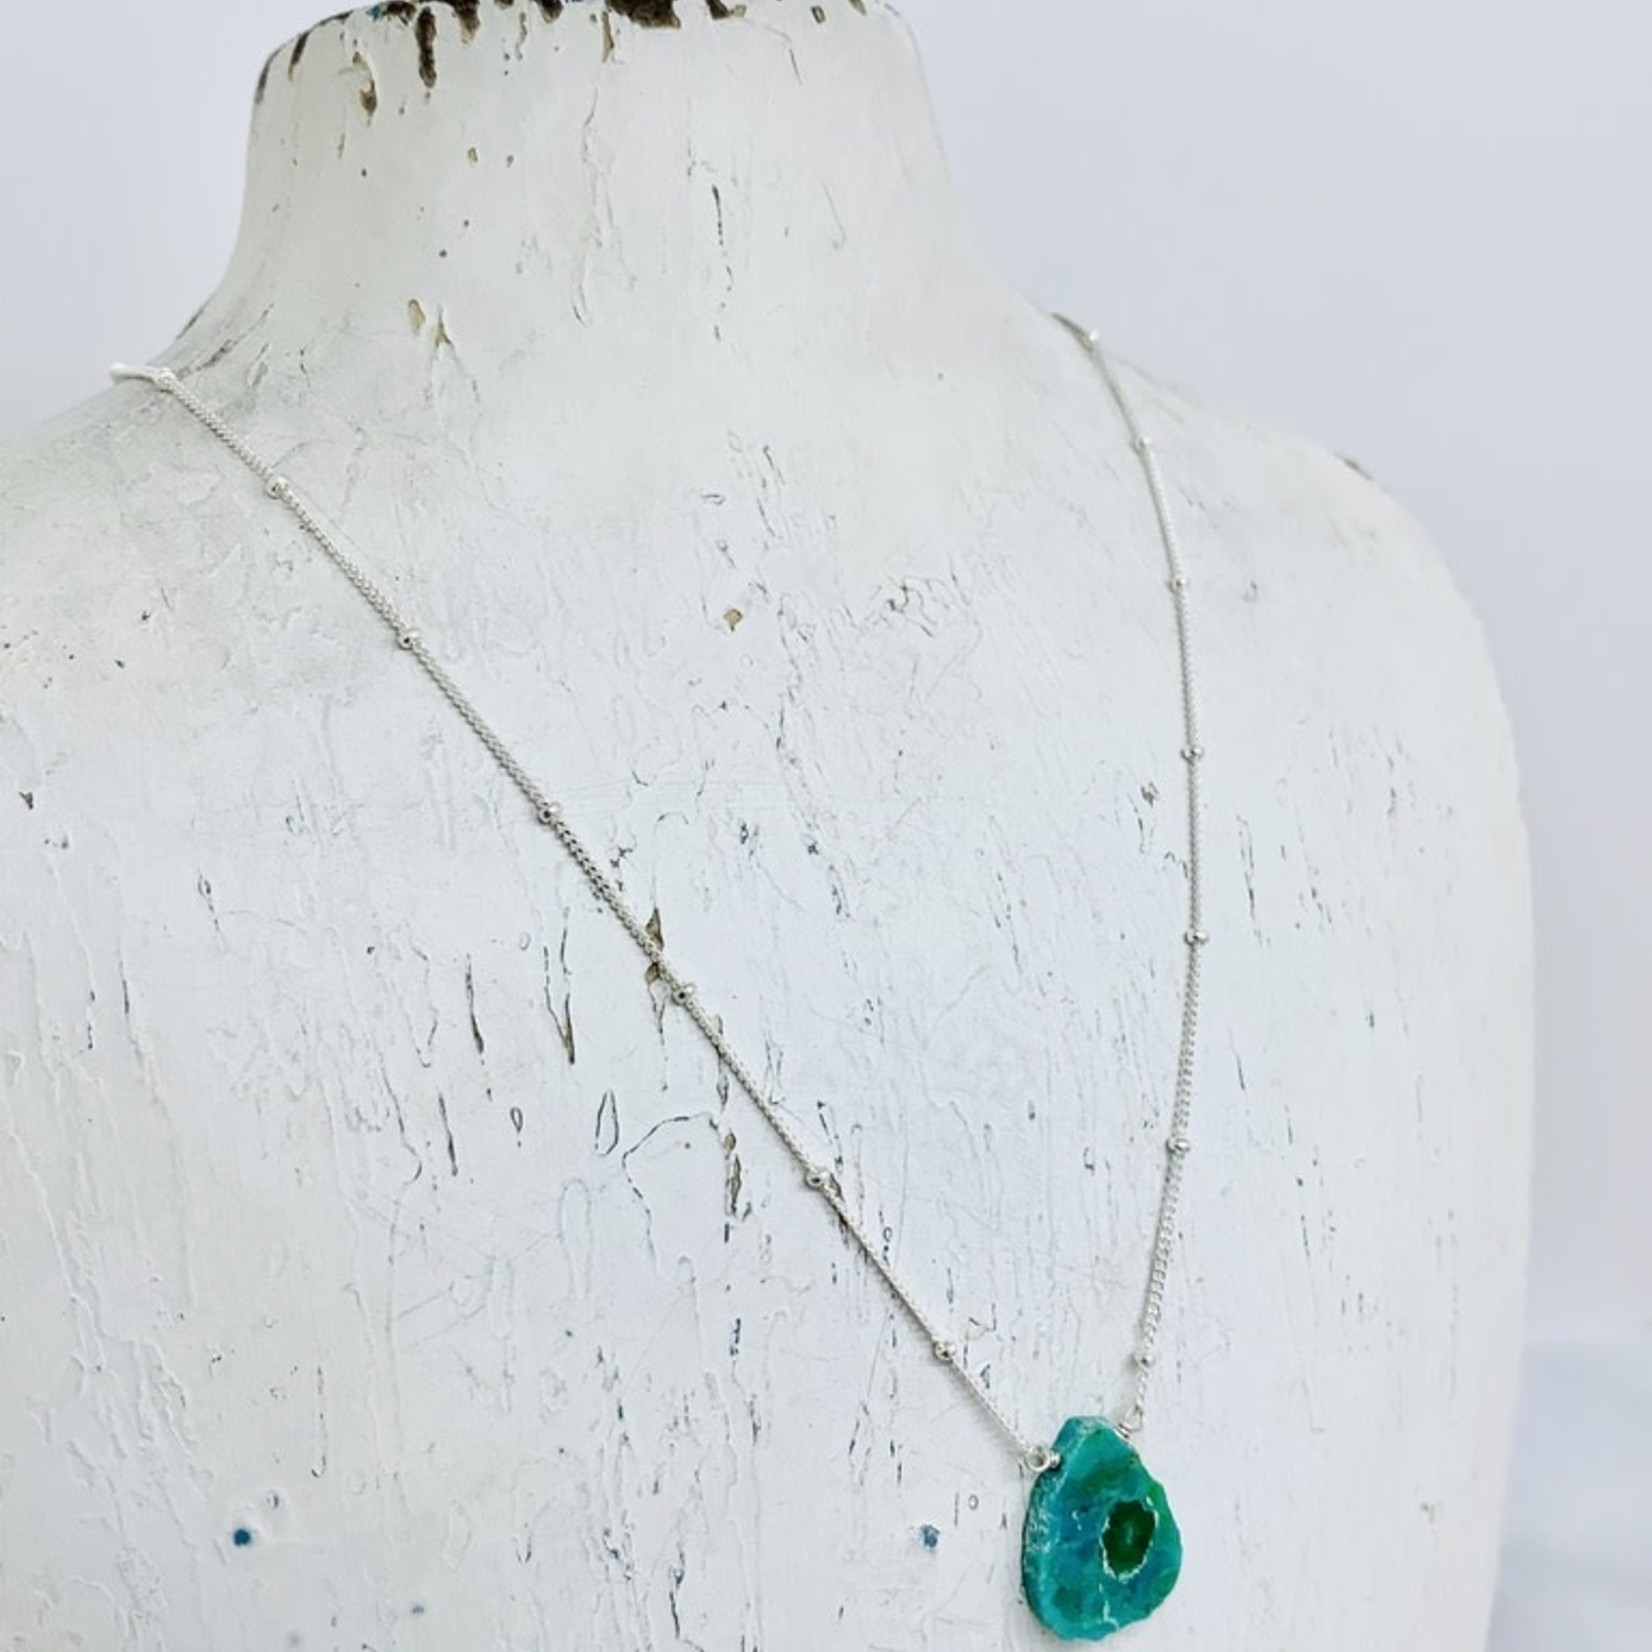 Fiji Necklace, Turquoise, Sterling Silver